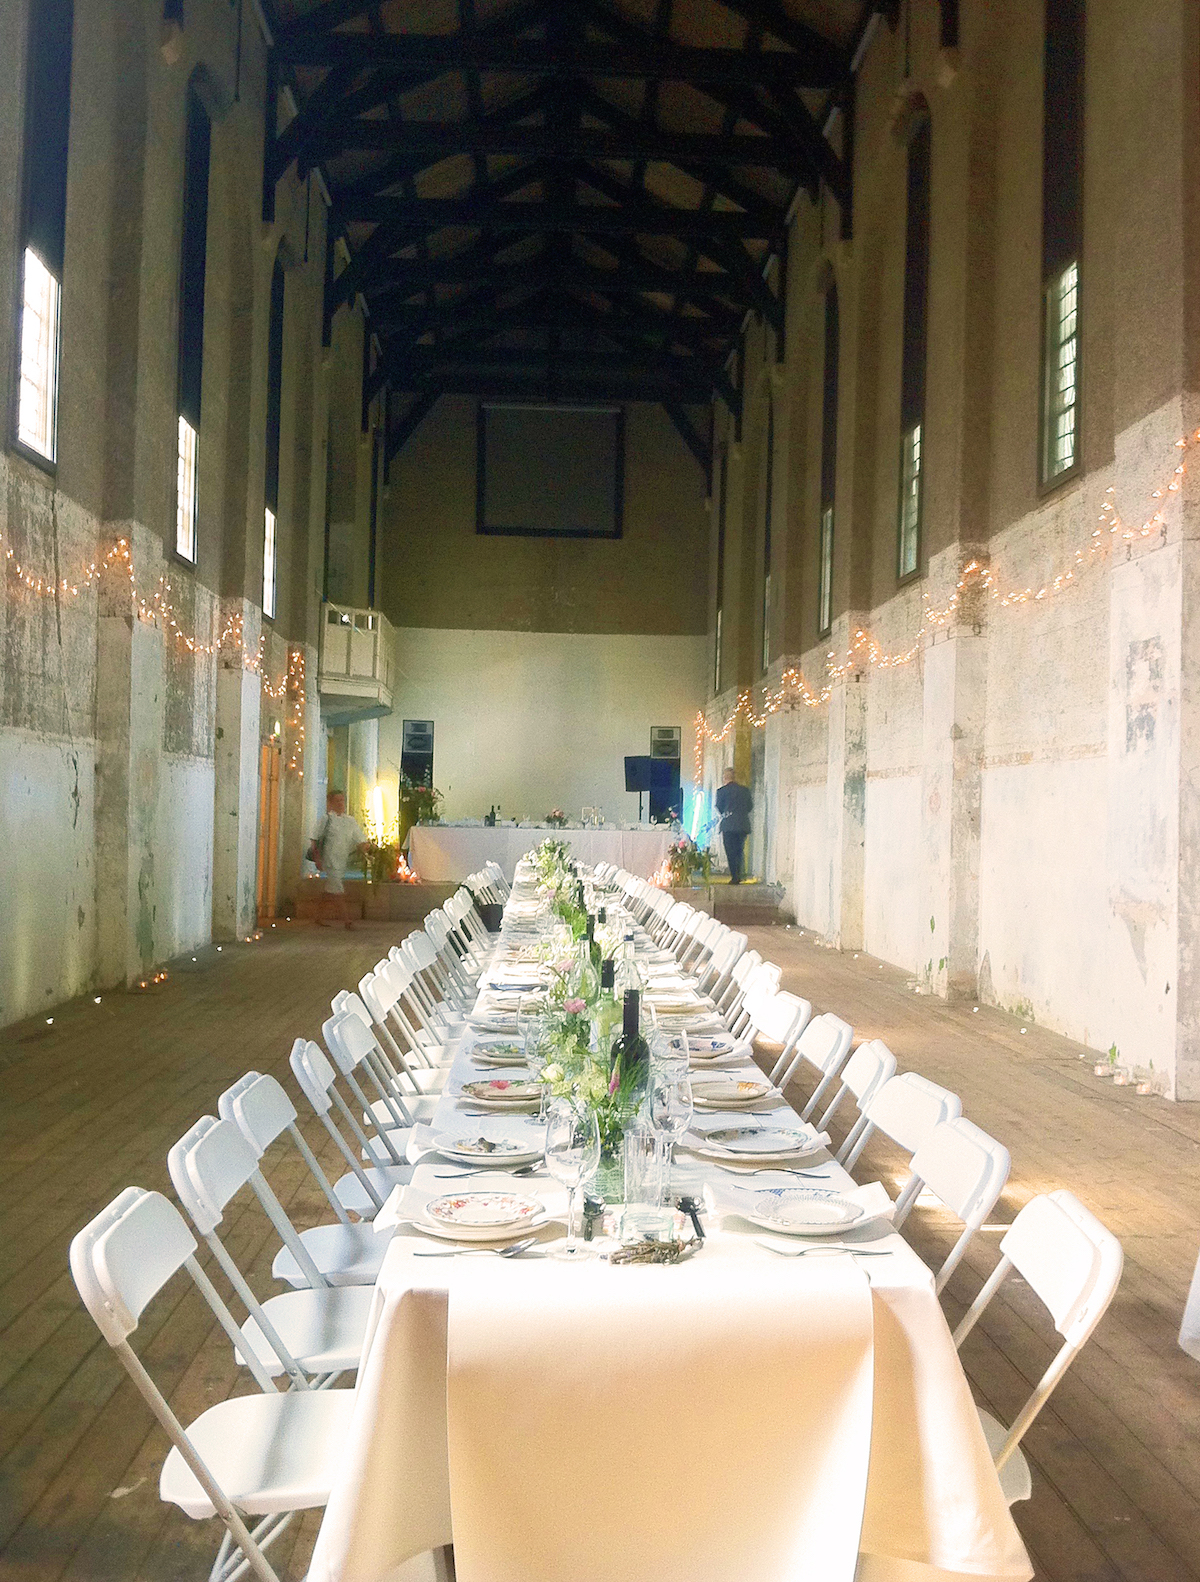 Cgp london the gallery by the pool venue hire for Garden rooms dilston